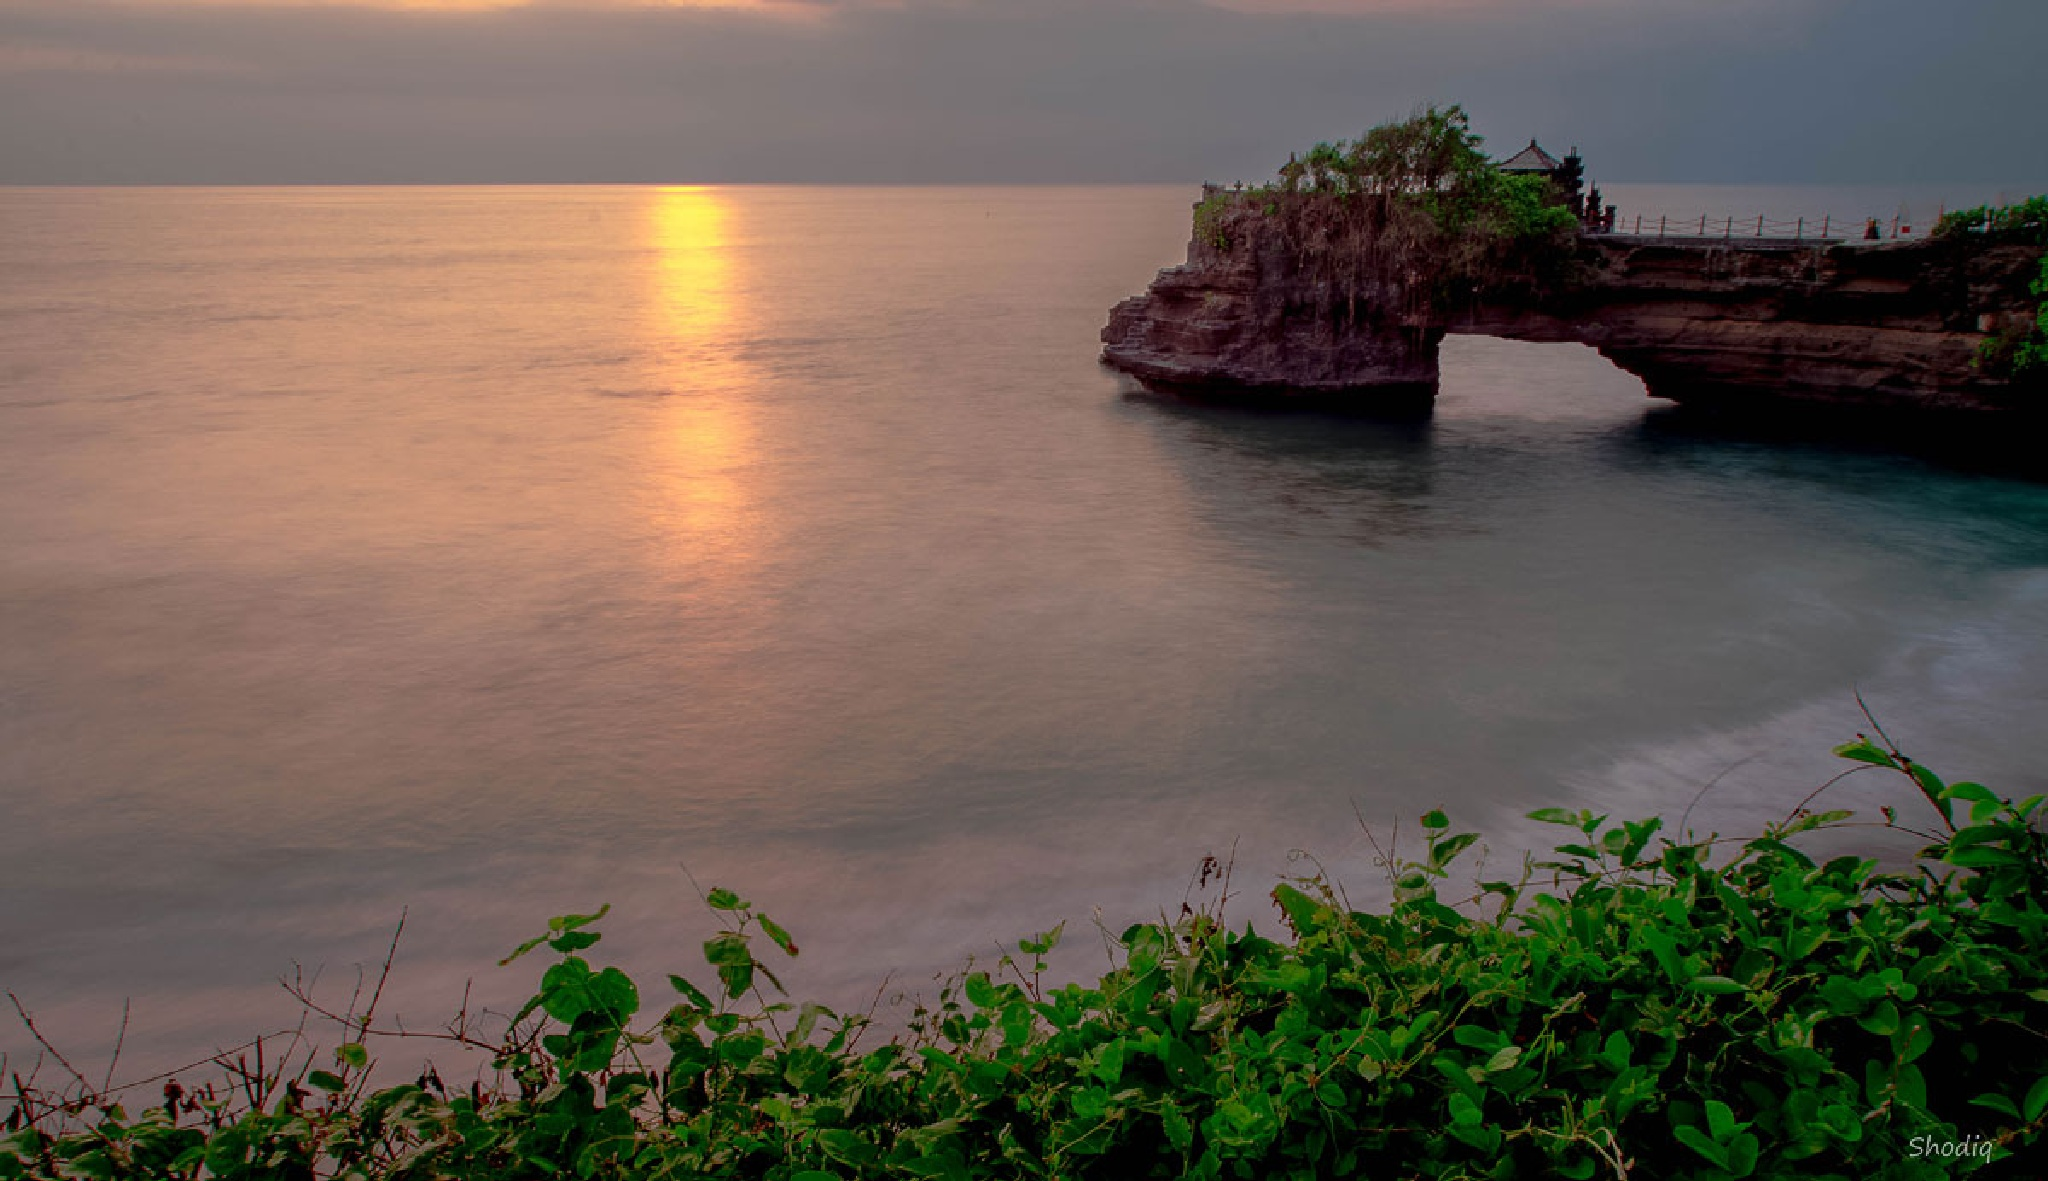 still in here in Tanah Lot, Bali by shodiq